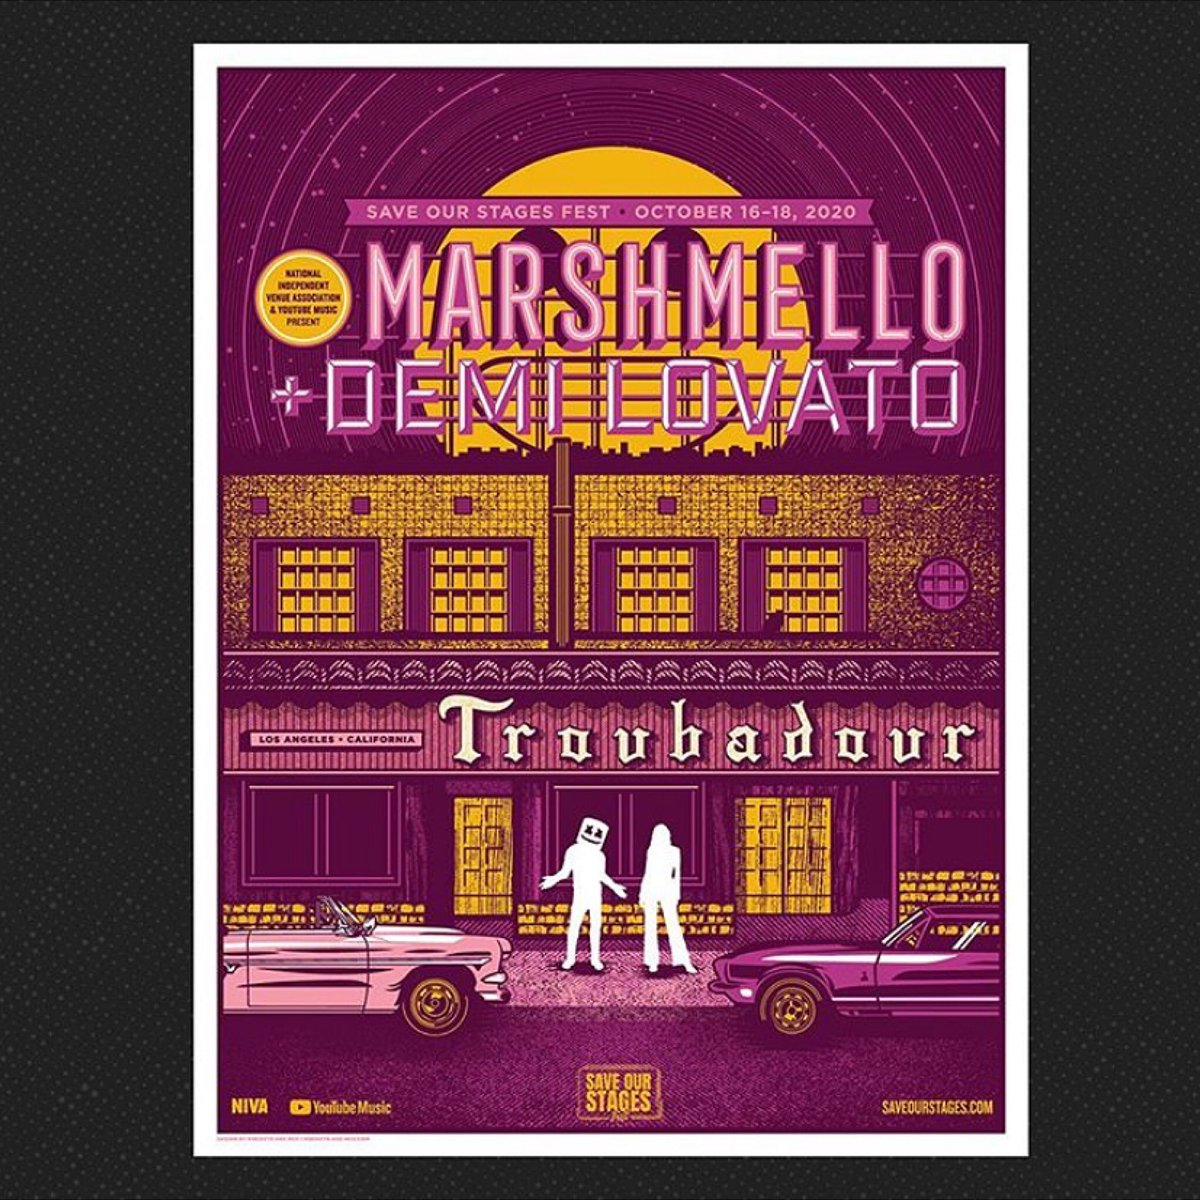 Grab @marshmellomusic and @ddlovato's limited edition poster by Rockets Are Red!  All proceeds will benefit the NIVA Emergency Relief Fund → https://t.co/NHdZKsYiRw https://t.co/i2z1iFarfi